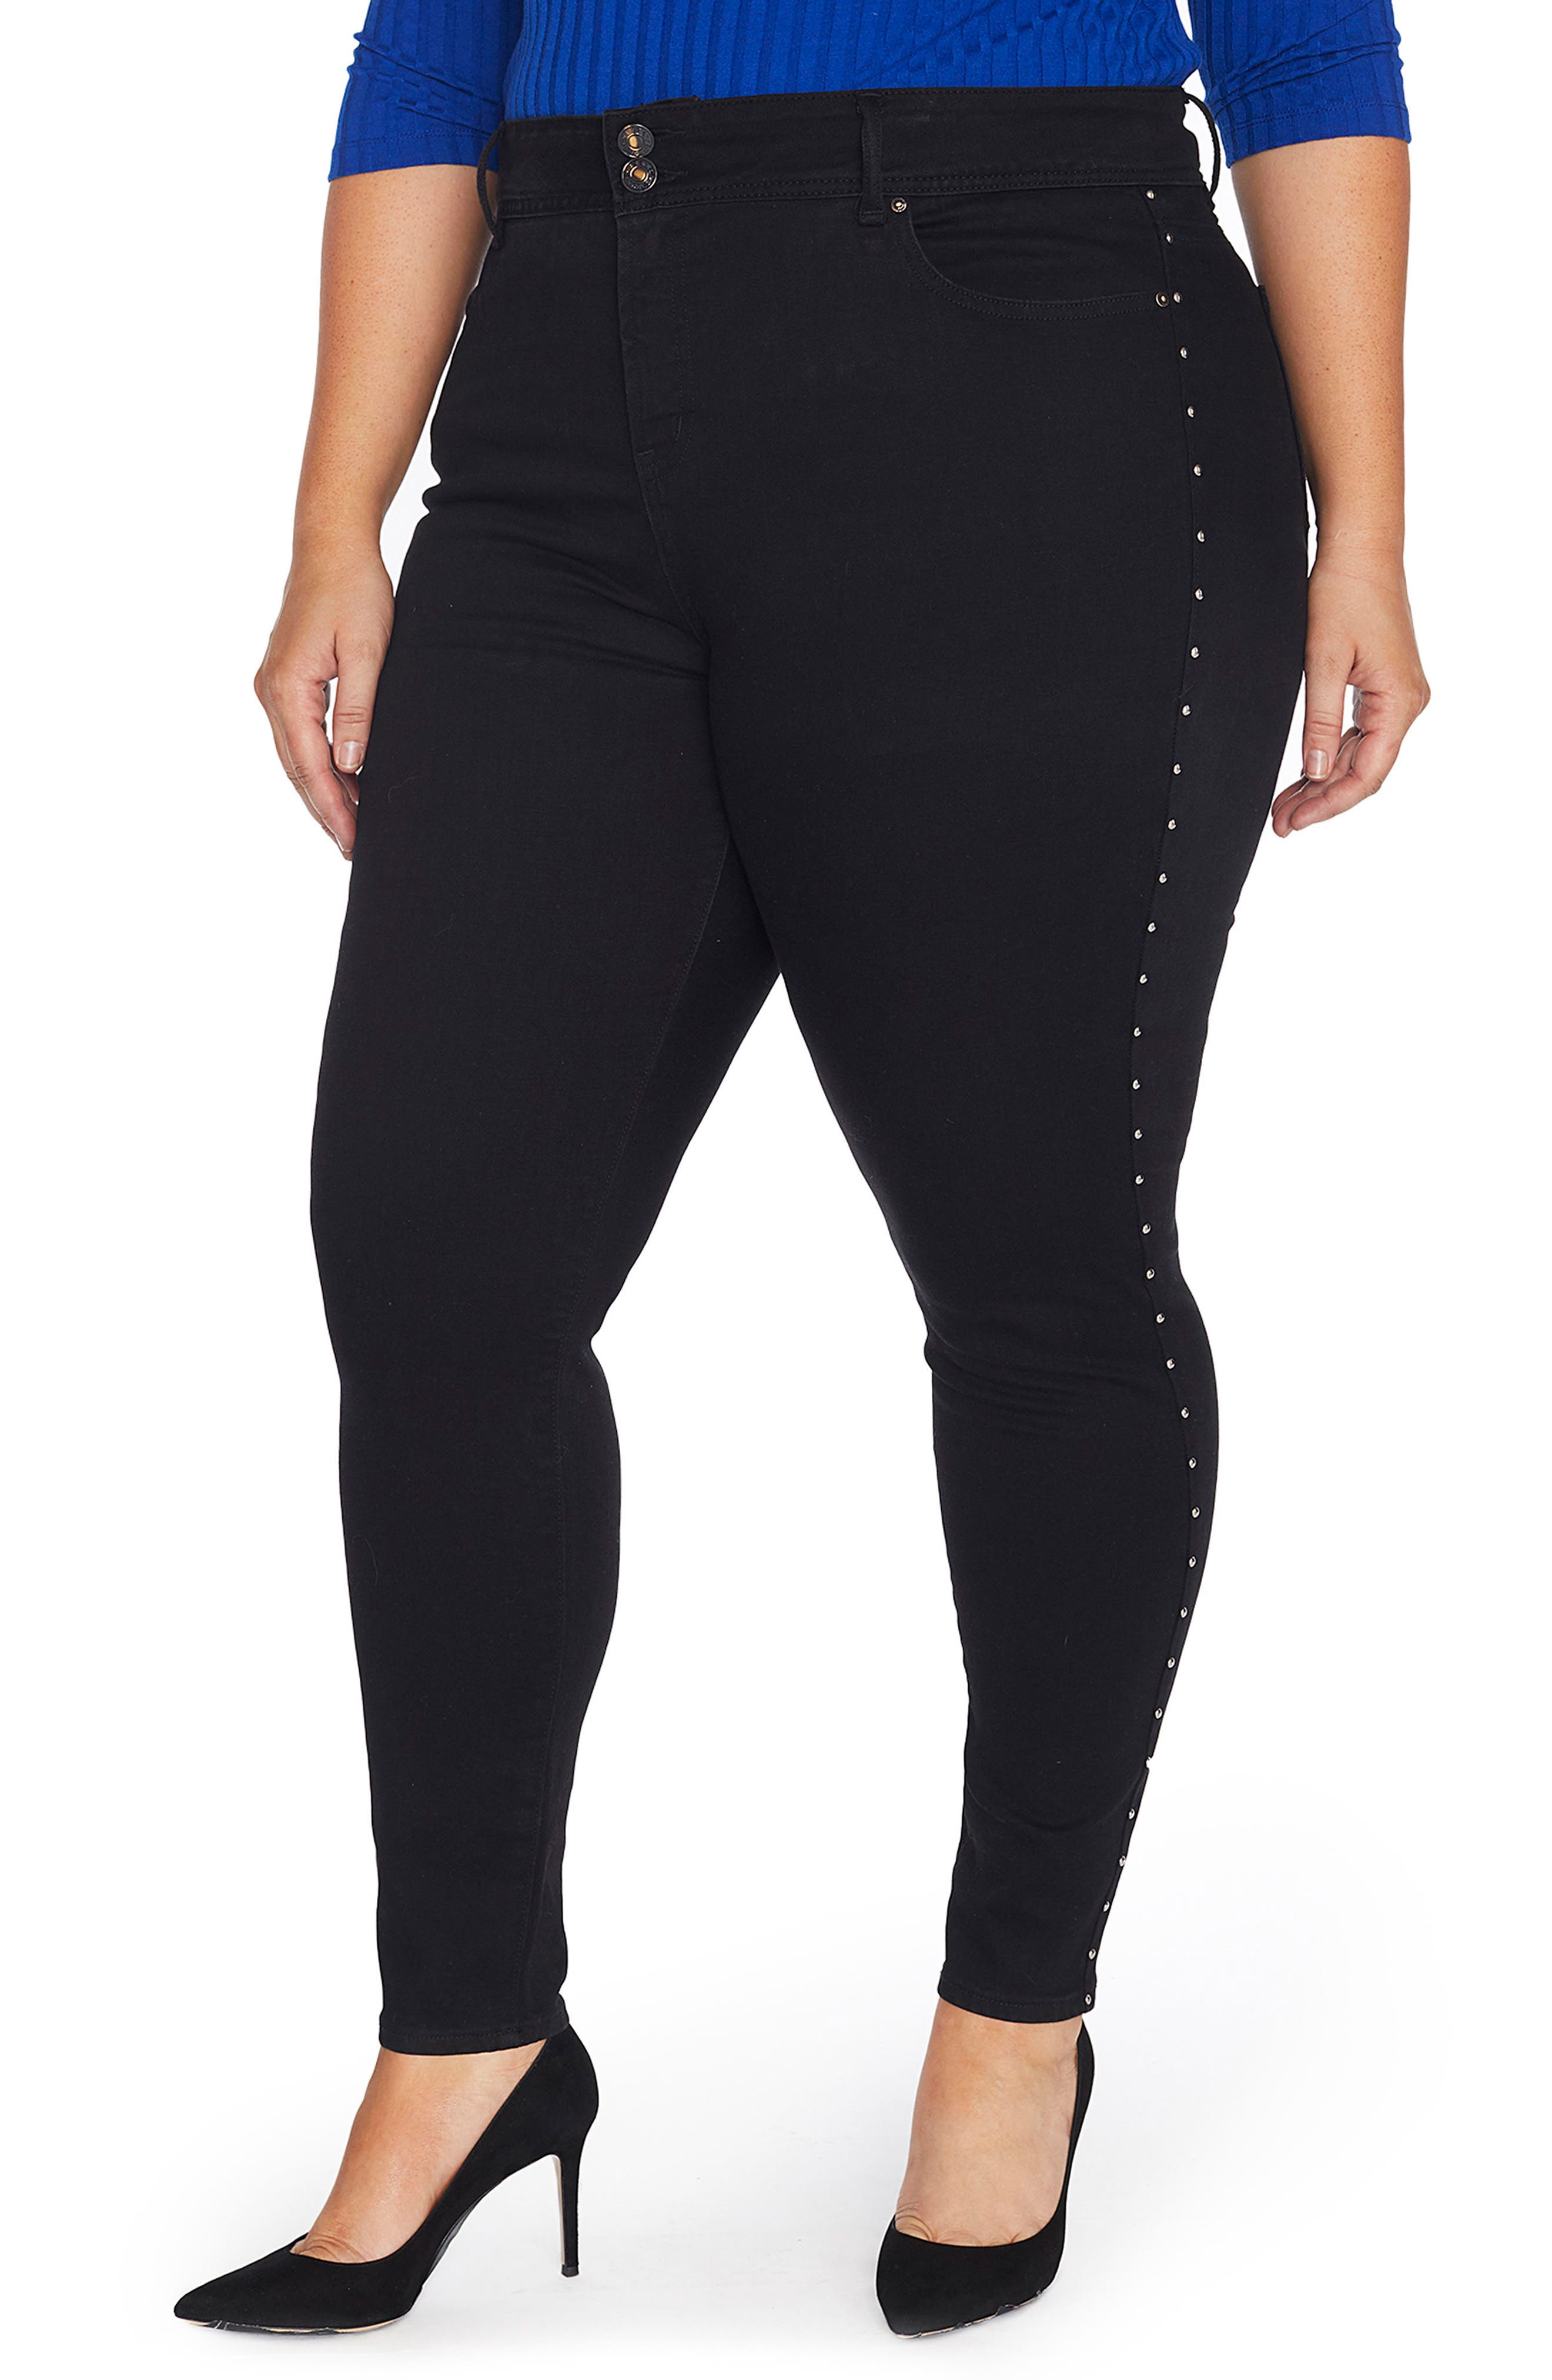 Alternate Image 1 Selected - REBEL WILSON X ANGELS Studded High Waist Skinny Jeans (Plus Size)